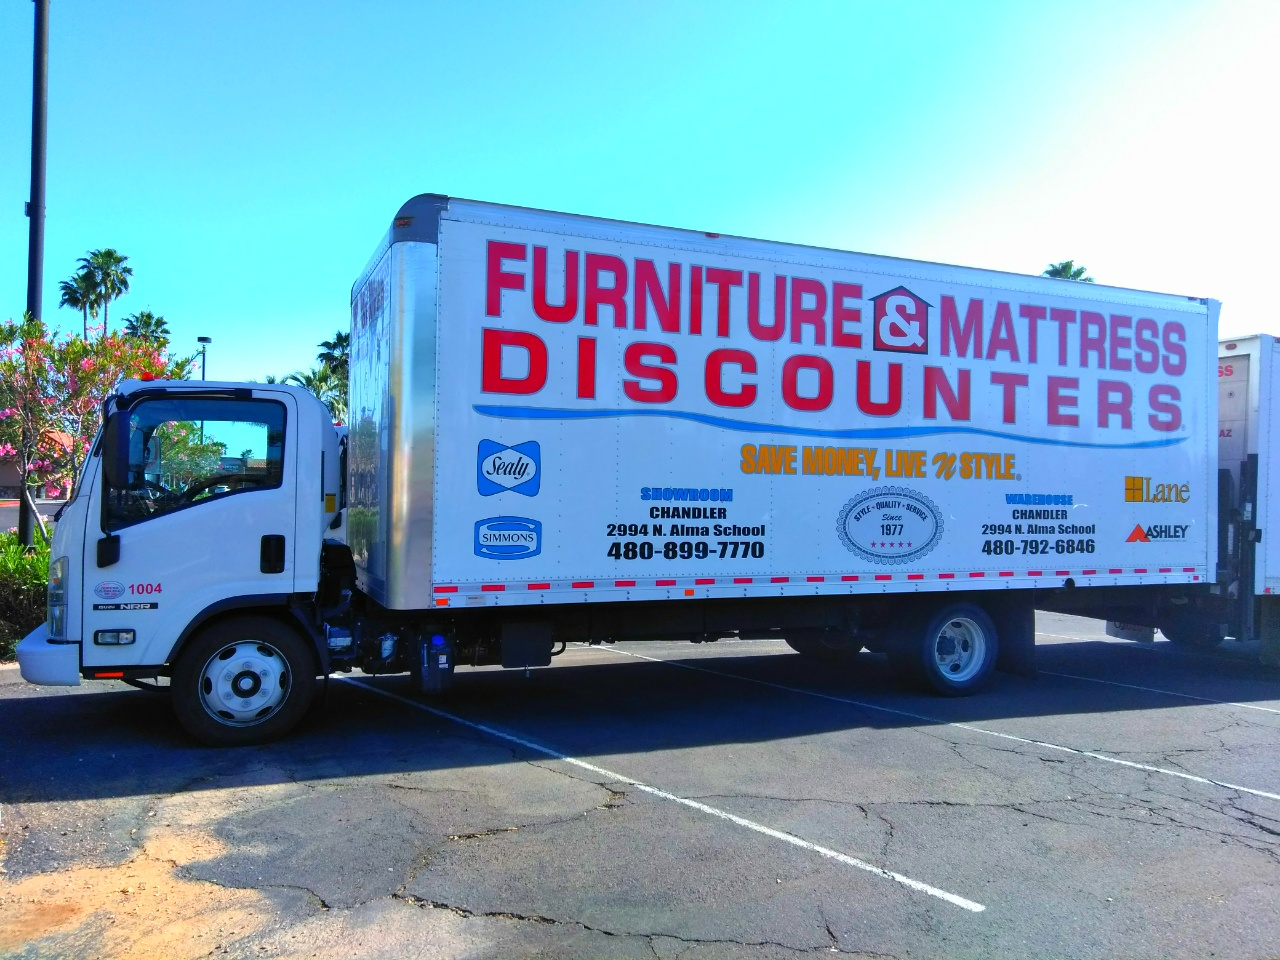 md price charming busters edgewood ode near in furniture discounters with sets mattress liquidators maryland bedroom stores baltimore accent cheap